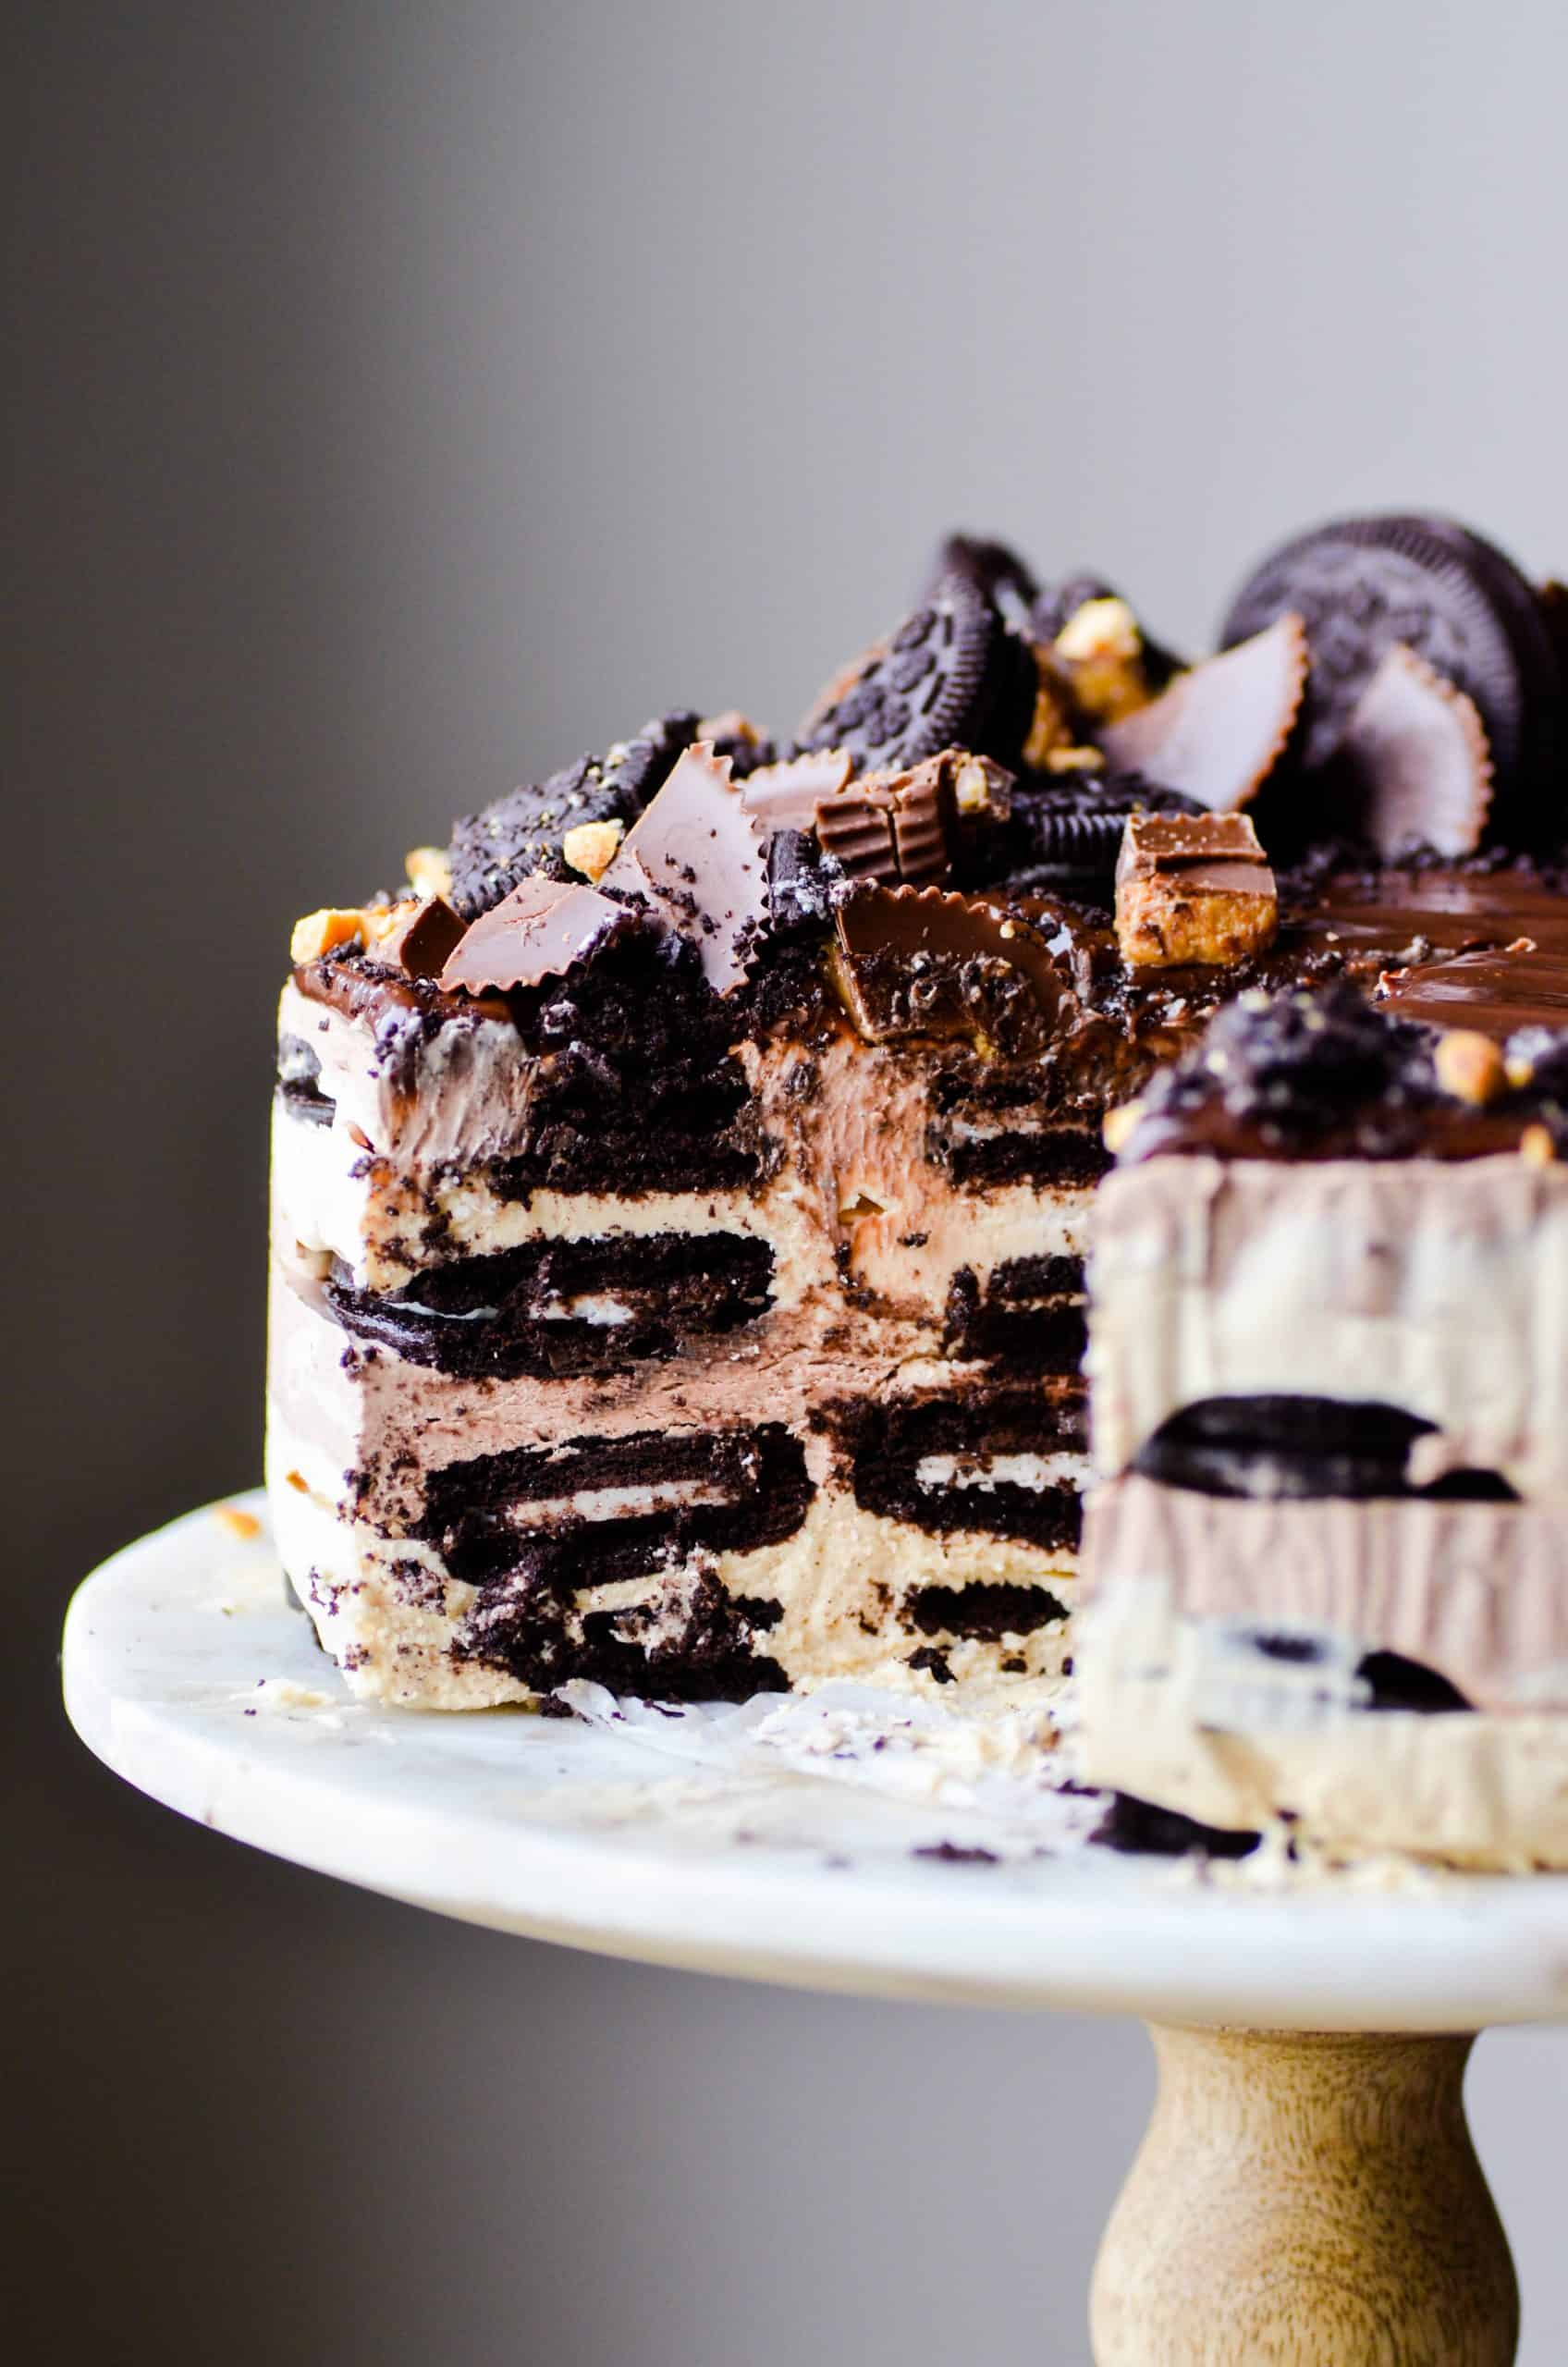 LOADS of soft Oreo cookies stuffed in between layers of chocolate and peanut butter mousse topped with hot fudge and peanut butter cups.